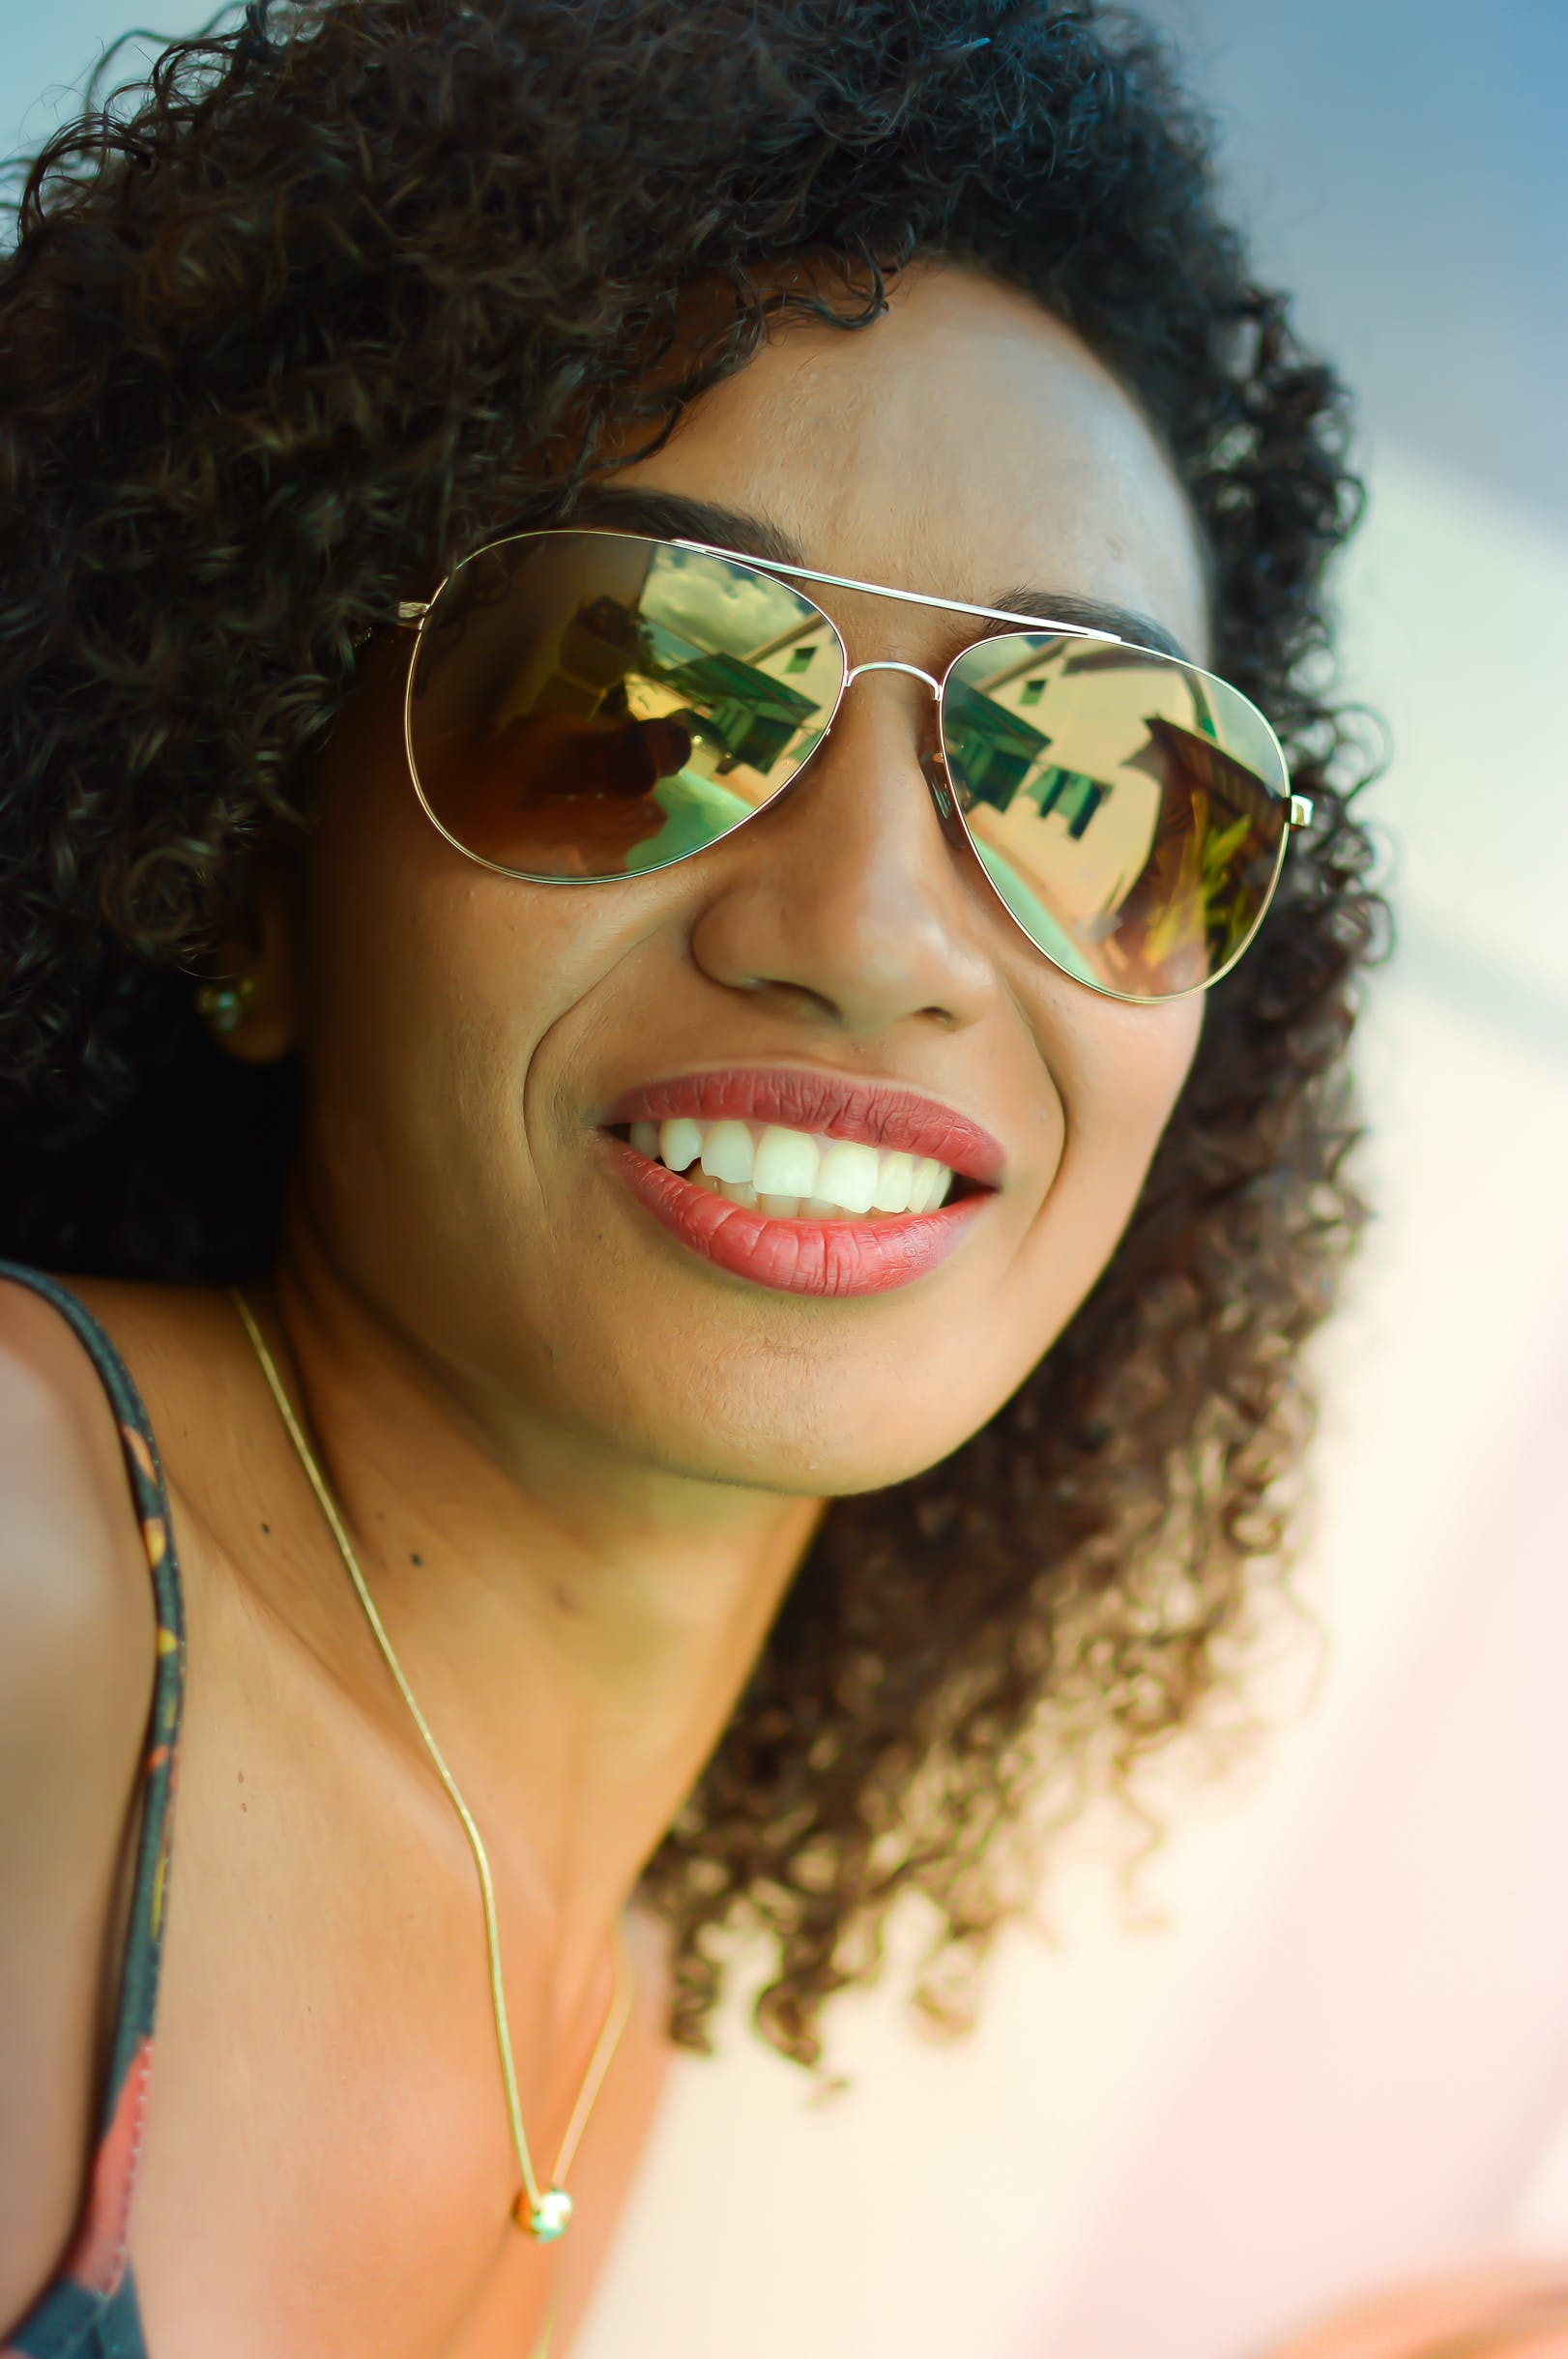 Free stock photo of sunglasses, woman, girl, model